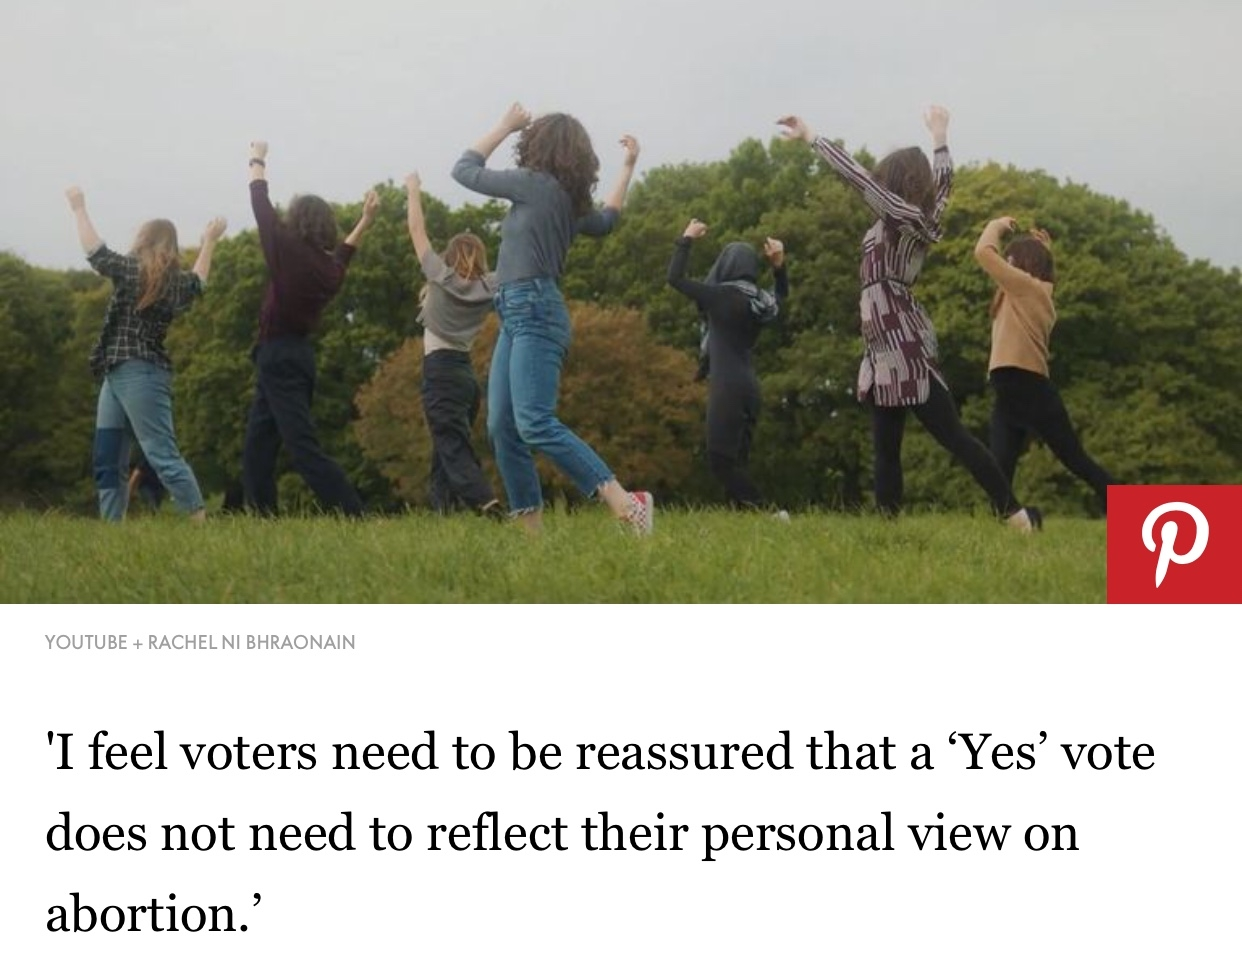 ELLE.COM   https://www.elle.com/uk/life-and-culture/a20869421/why-you-should-vote-yes-in-the-irish-referendum-on-friday/